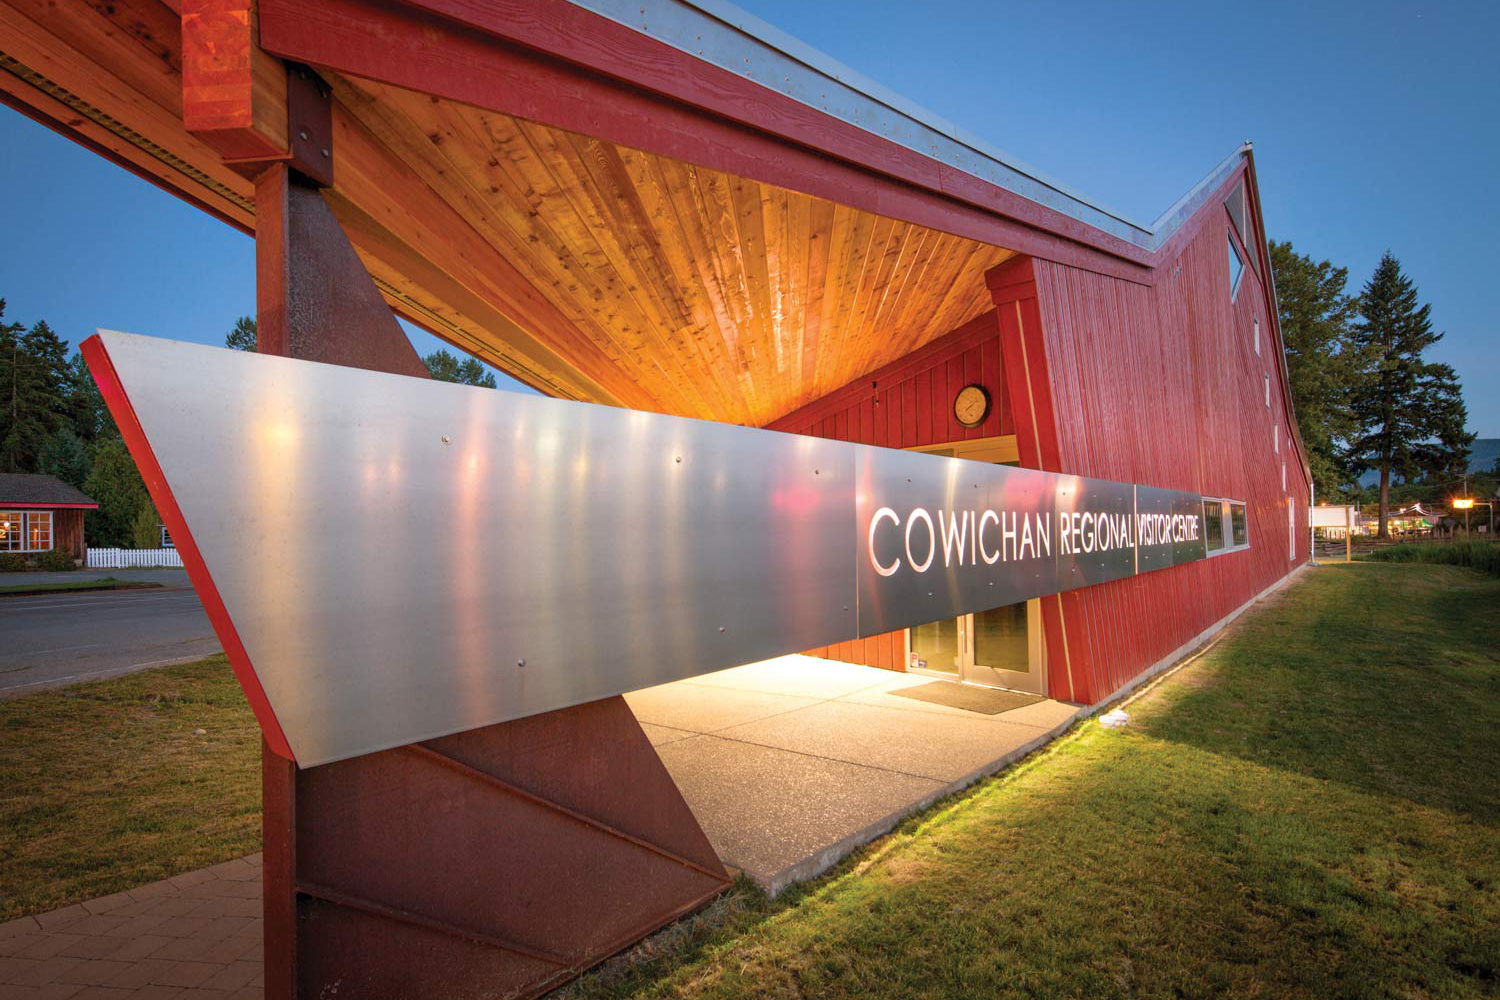 cowichan-visitor-centre-cohlmeyer-architecture-2.jpg